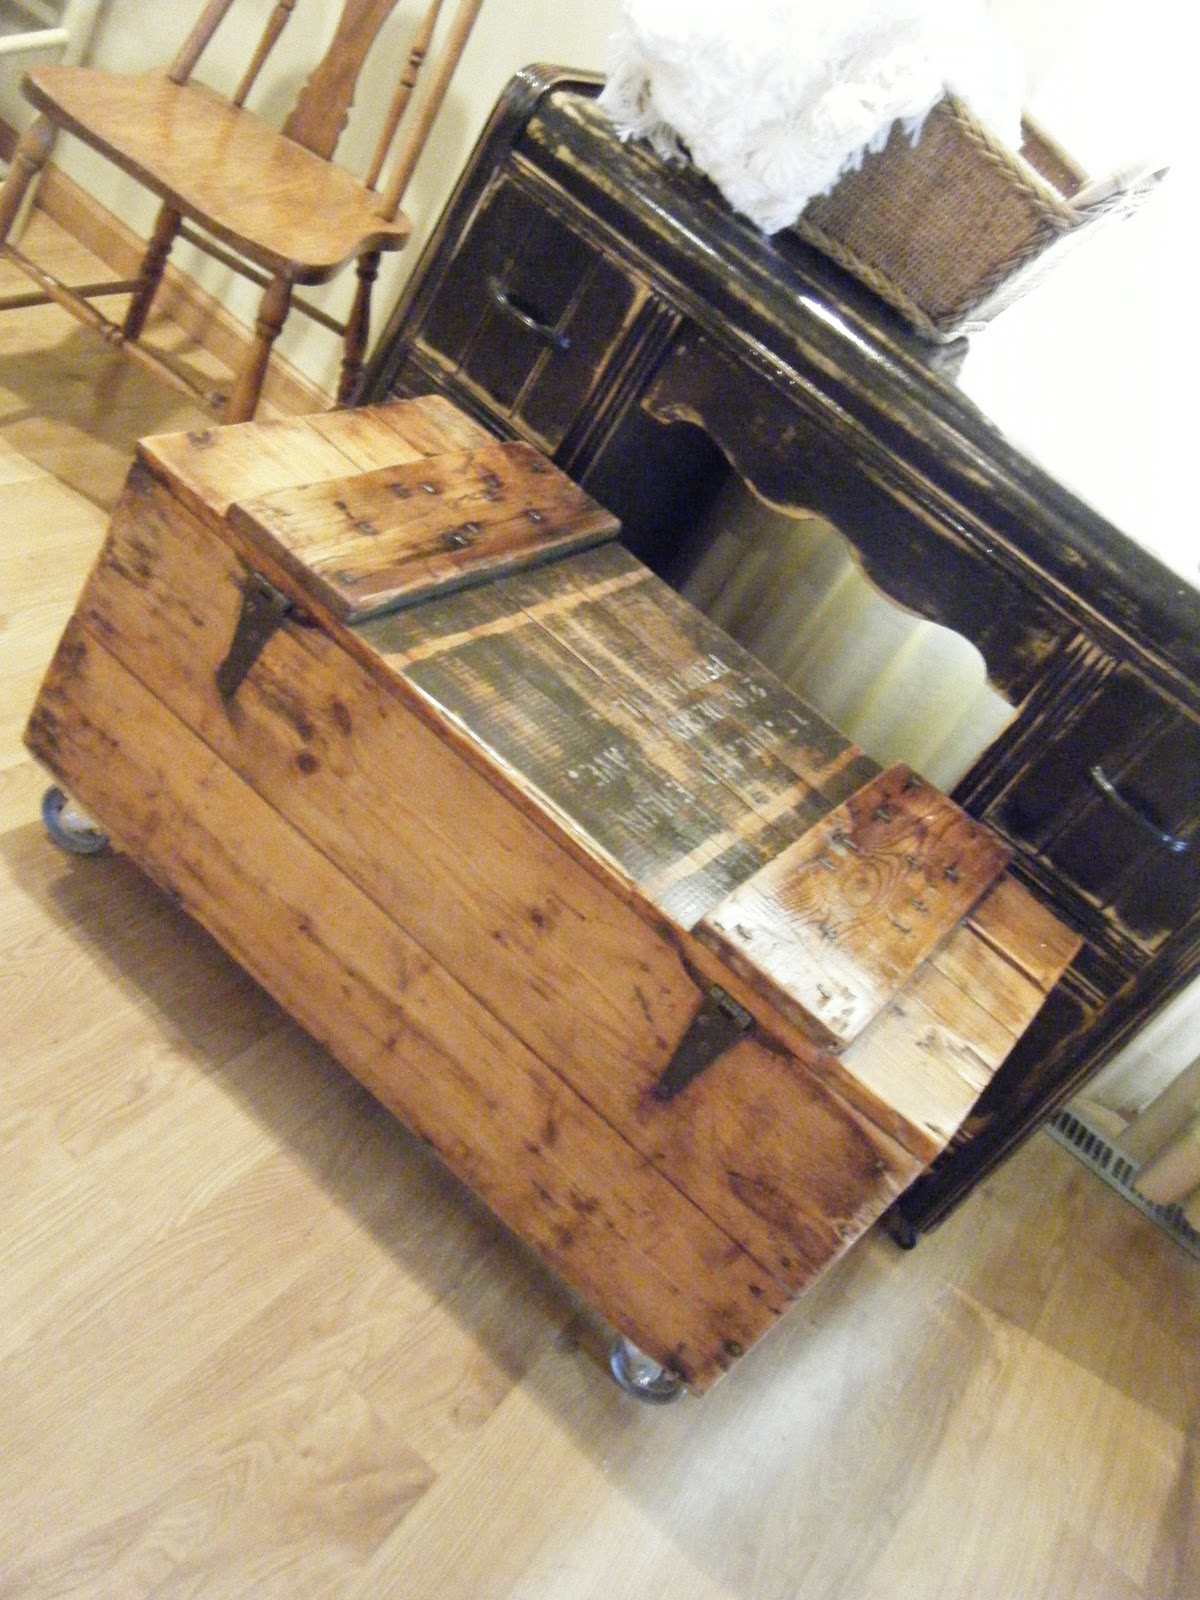 Tattered Lantern Rustic crate coffee table on casters $115 00 obo